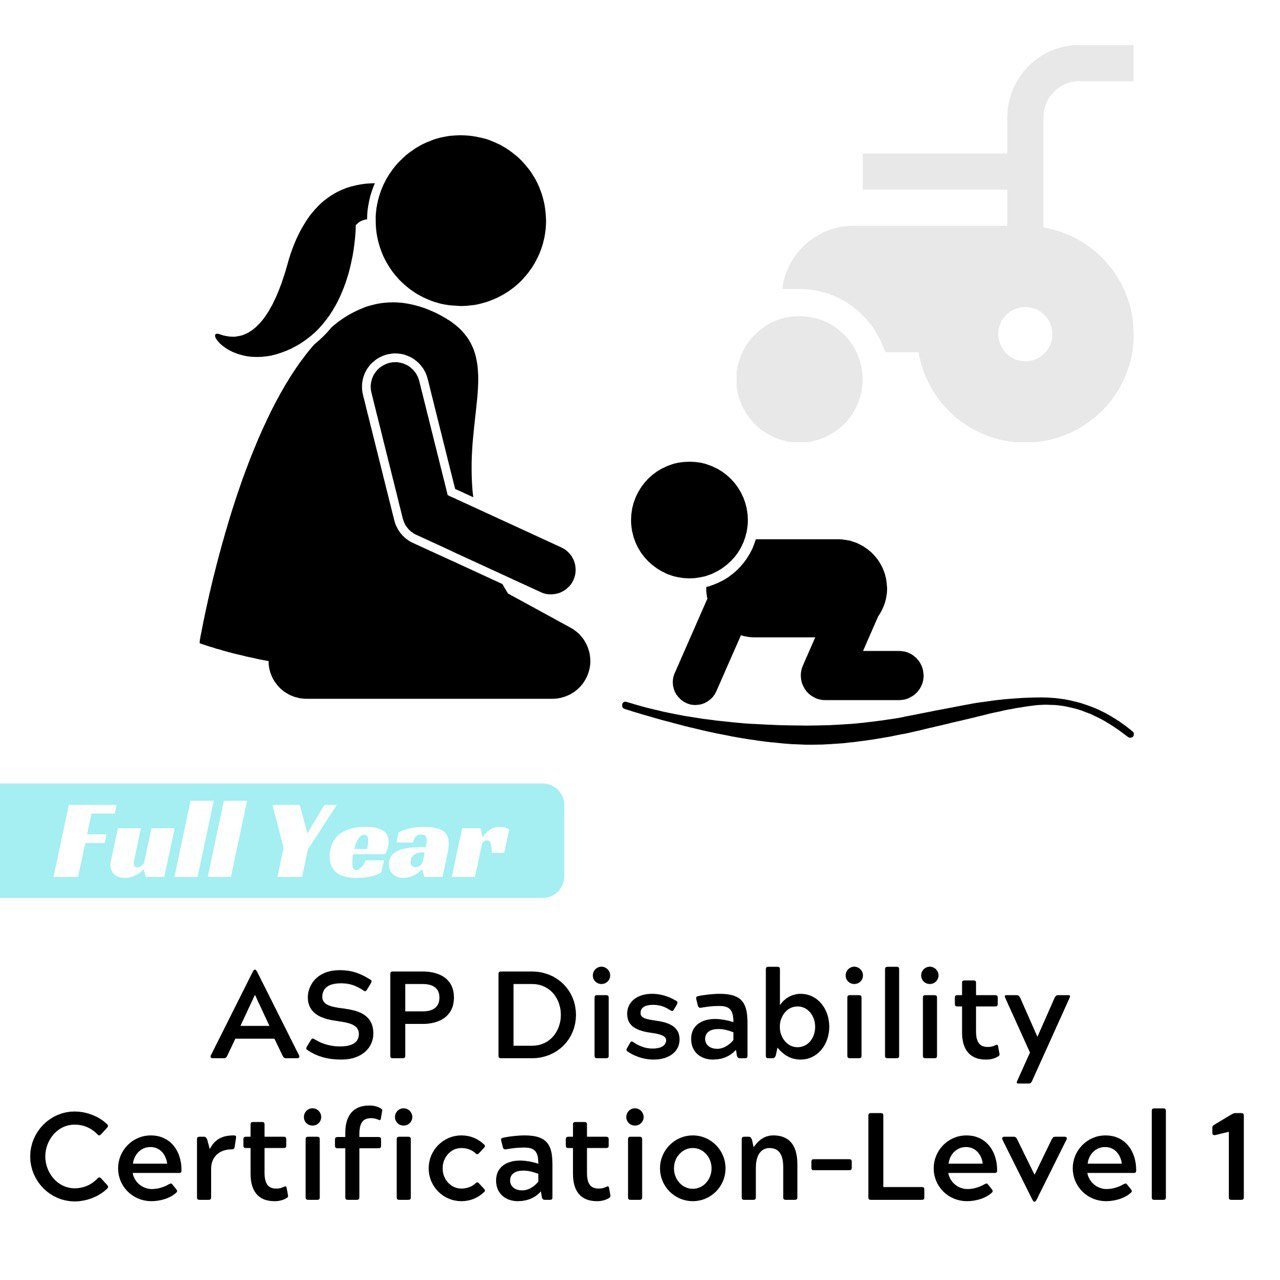 ASP Disabilities Certification Course — Full Year (Level 1)